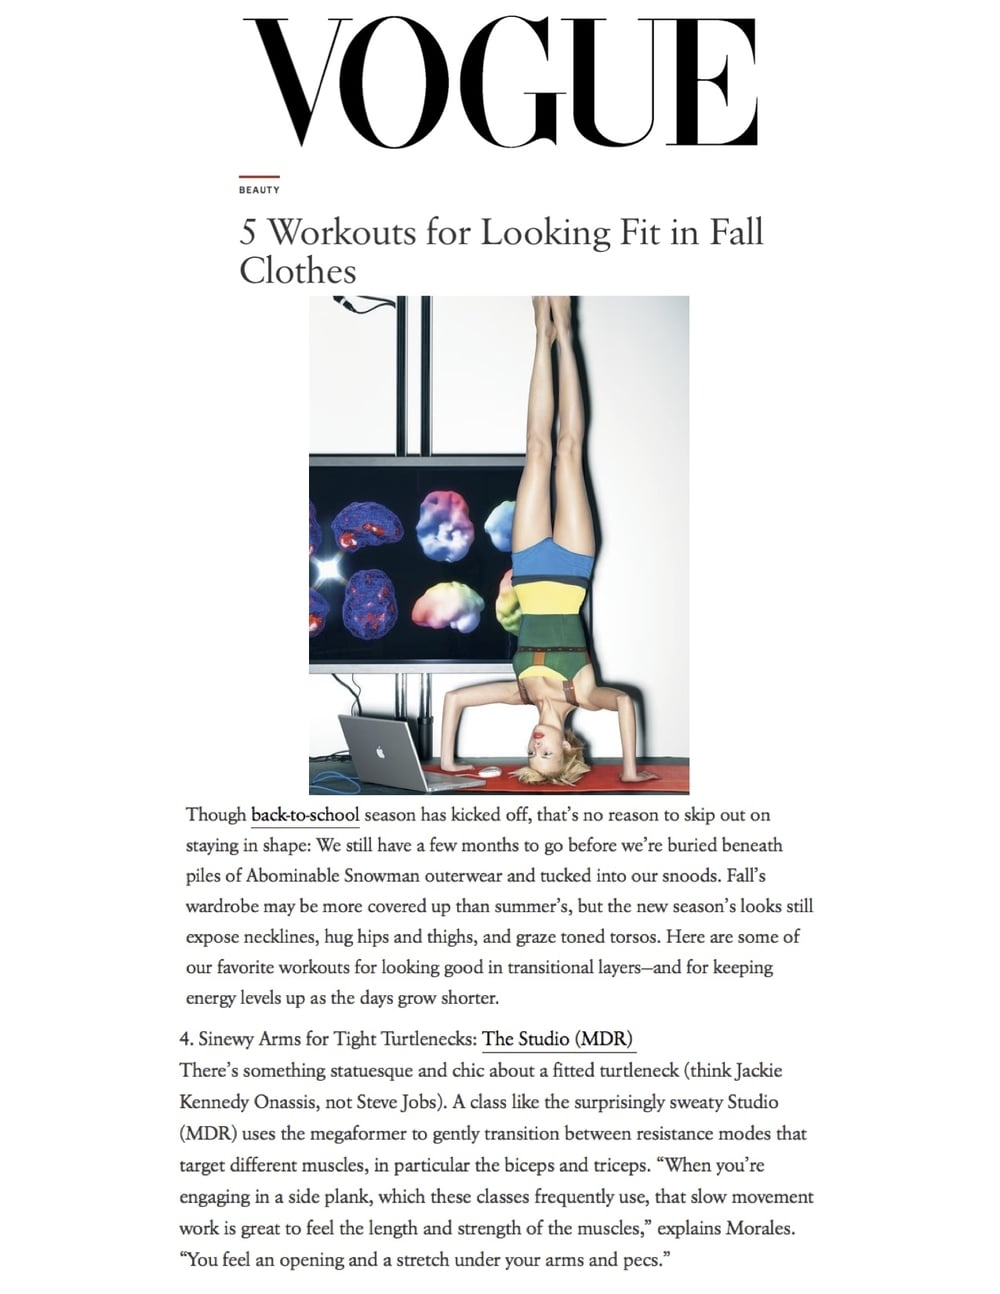 Vogue article, Sept 15